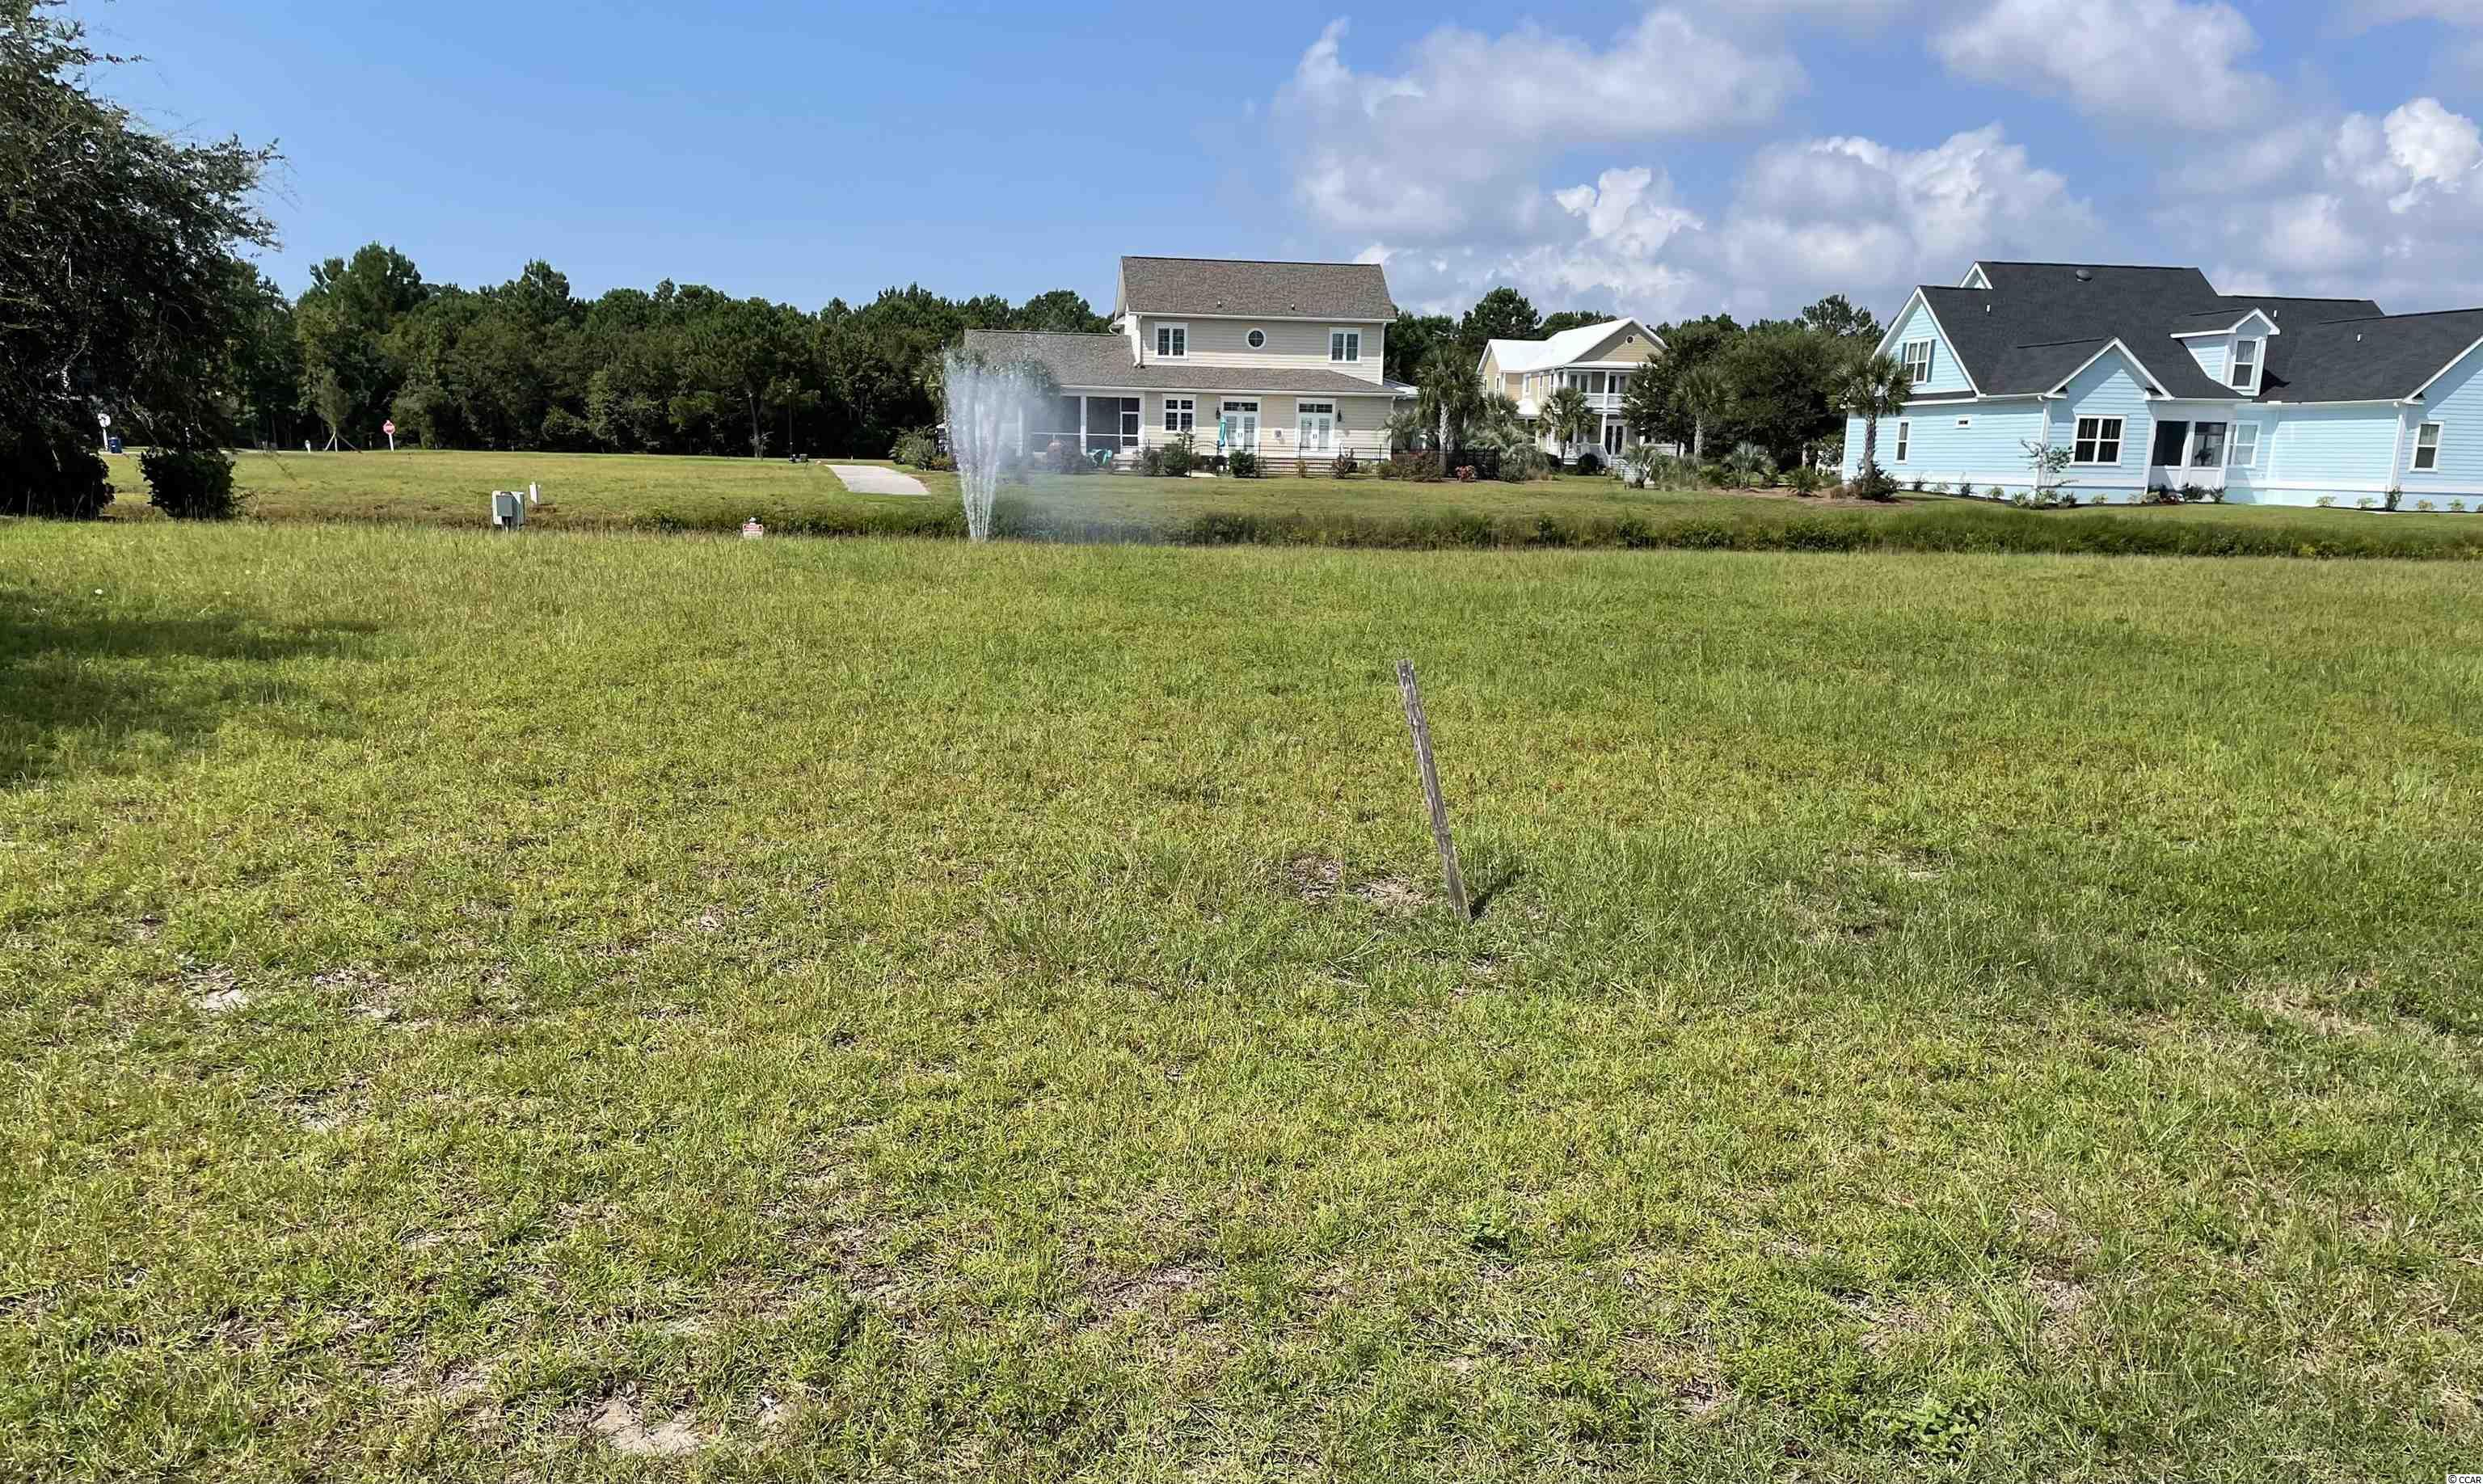 Nicest Ready to Build Corner Lot currently available on the water in the Charleston Landing Community of North Myrtle Beach. More information available on www.charlestonlandinghoa.com. No timetable to construct your Charleston style home by your choice of builder.